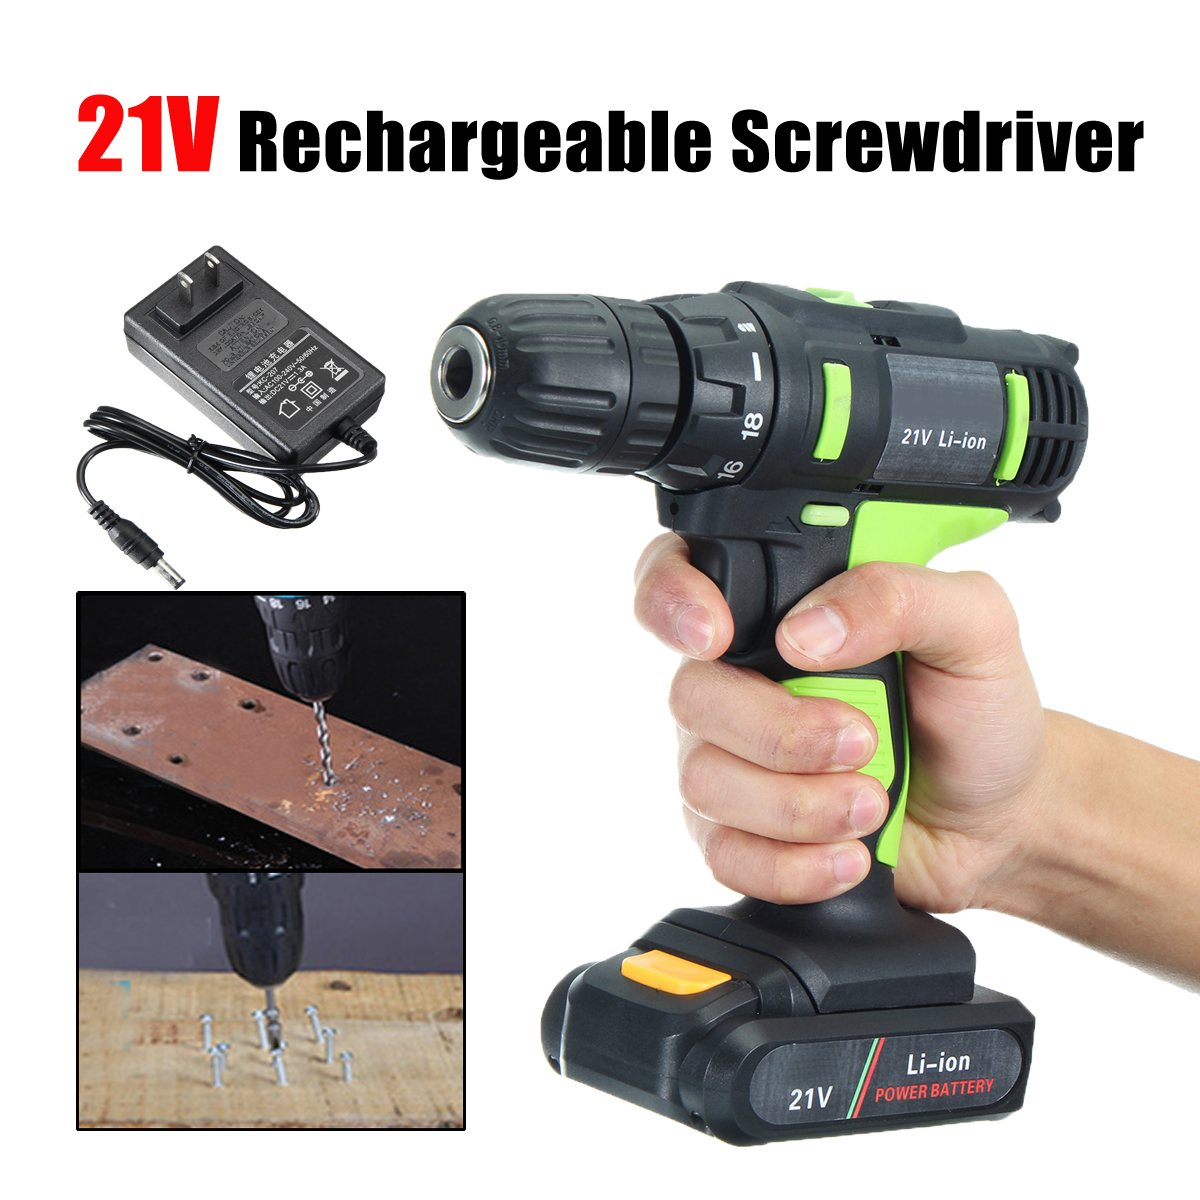 21V Electric Screwdriver Battery Screwdriver Cordless Drill Power Tools Professional Electric Torque Screwdriver + 2 Batteries free shipping brand proskit upt 32007d frequency modulated electric screwdriver 2 electric screwdriver bit 900 1300rpm tools